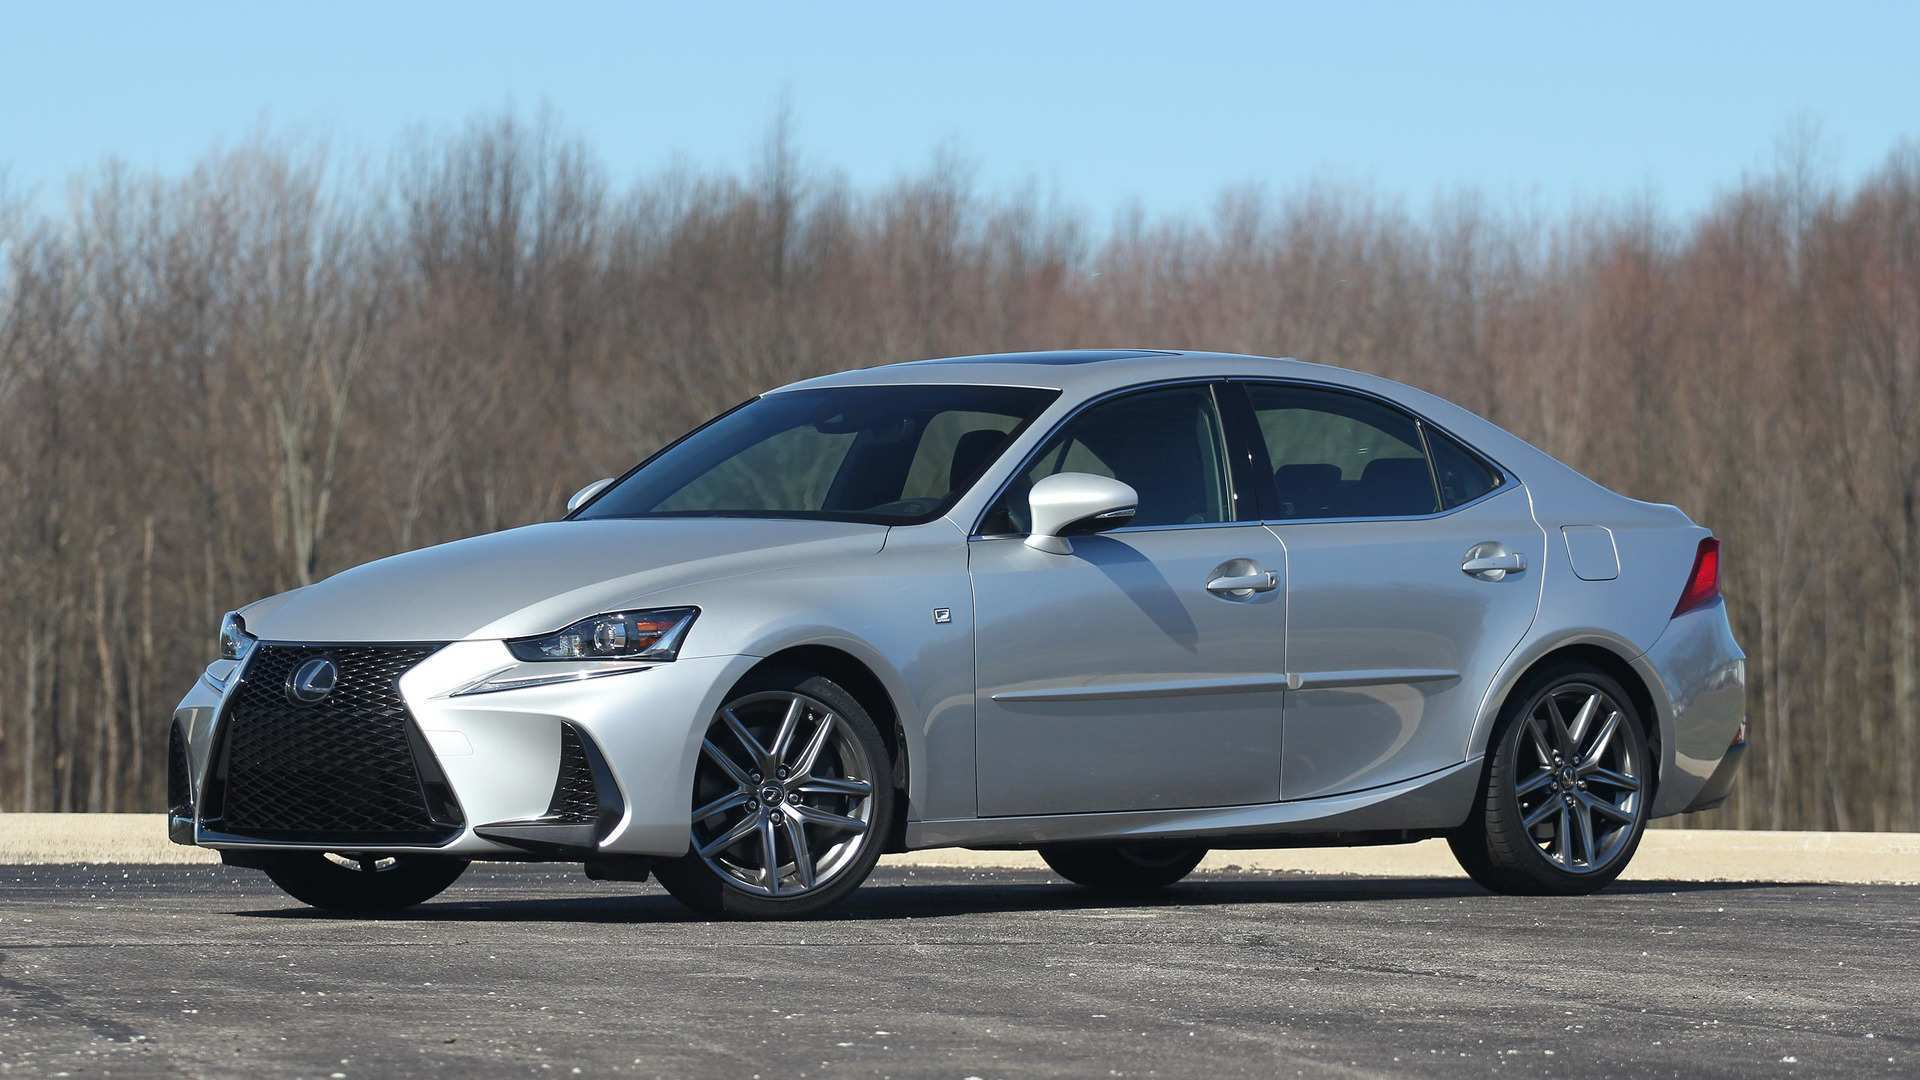 70 Best 2020 Lexus GS F Review And Release Date